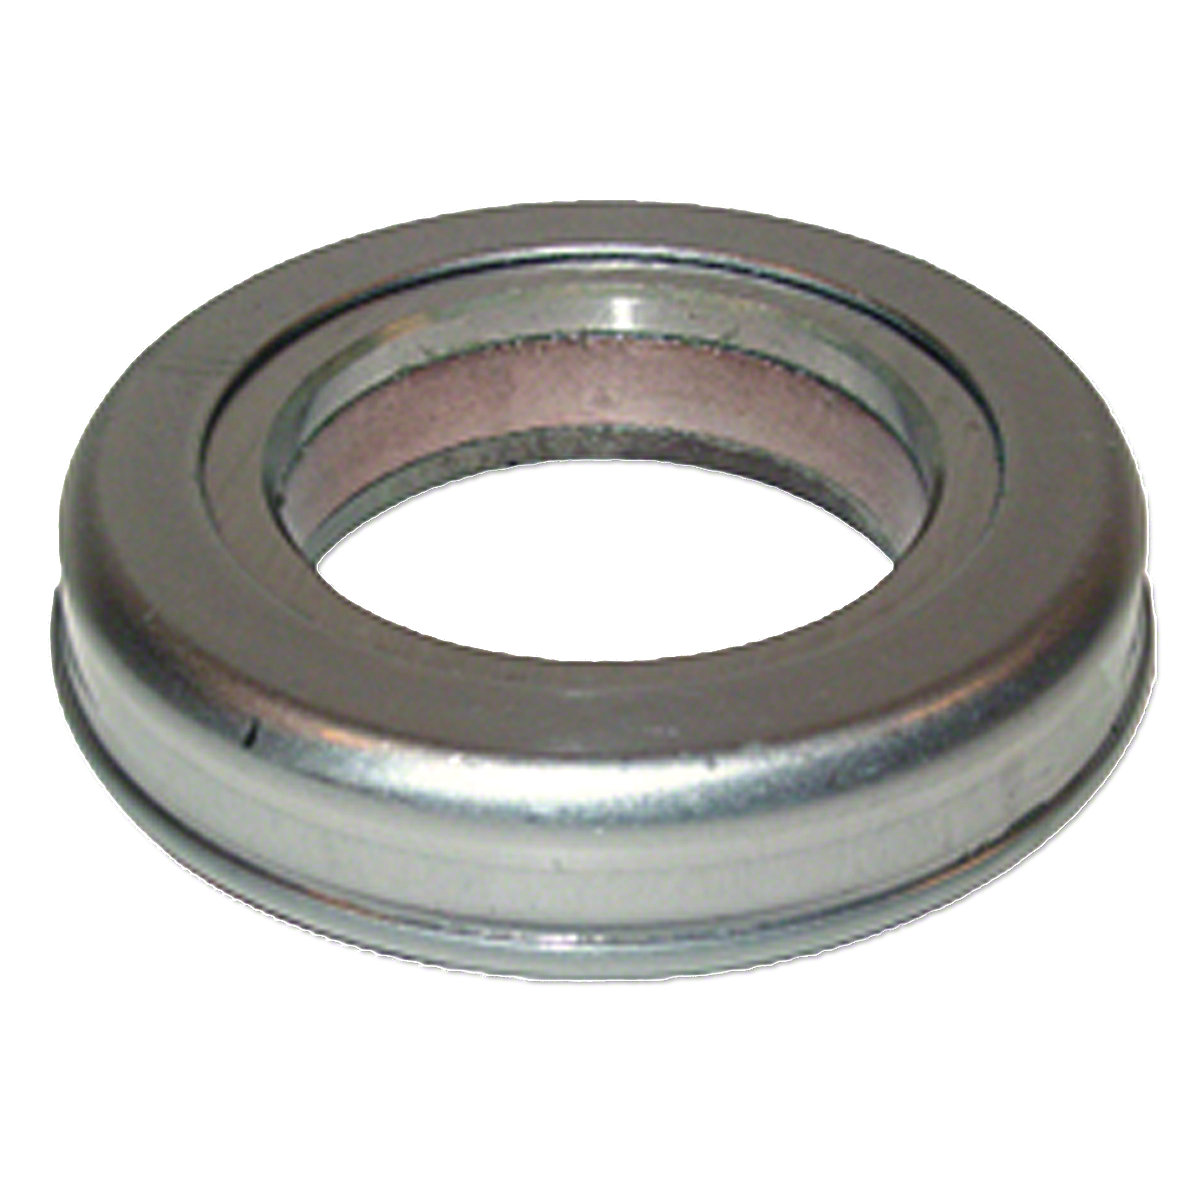 Throwout Bearing For Allis Chalmers: B, IB, D10, D12, RC, WC, WD, WD45.